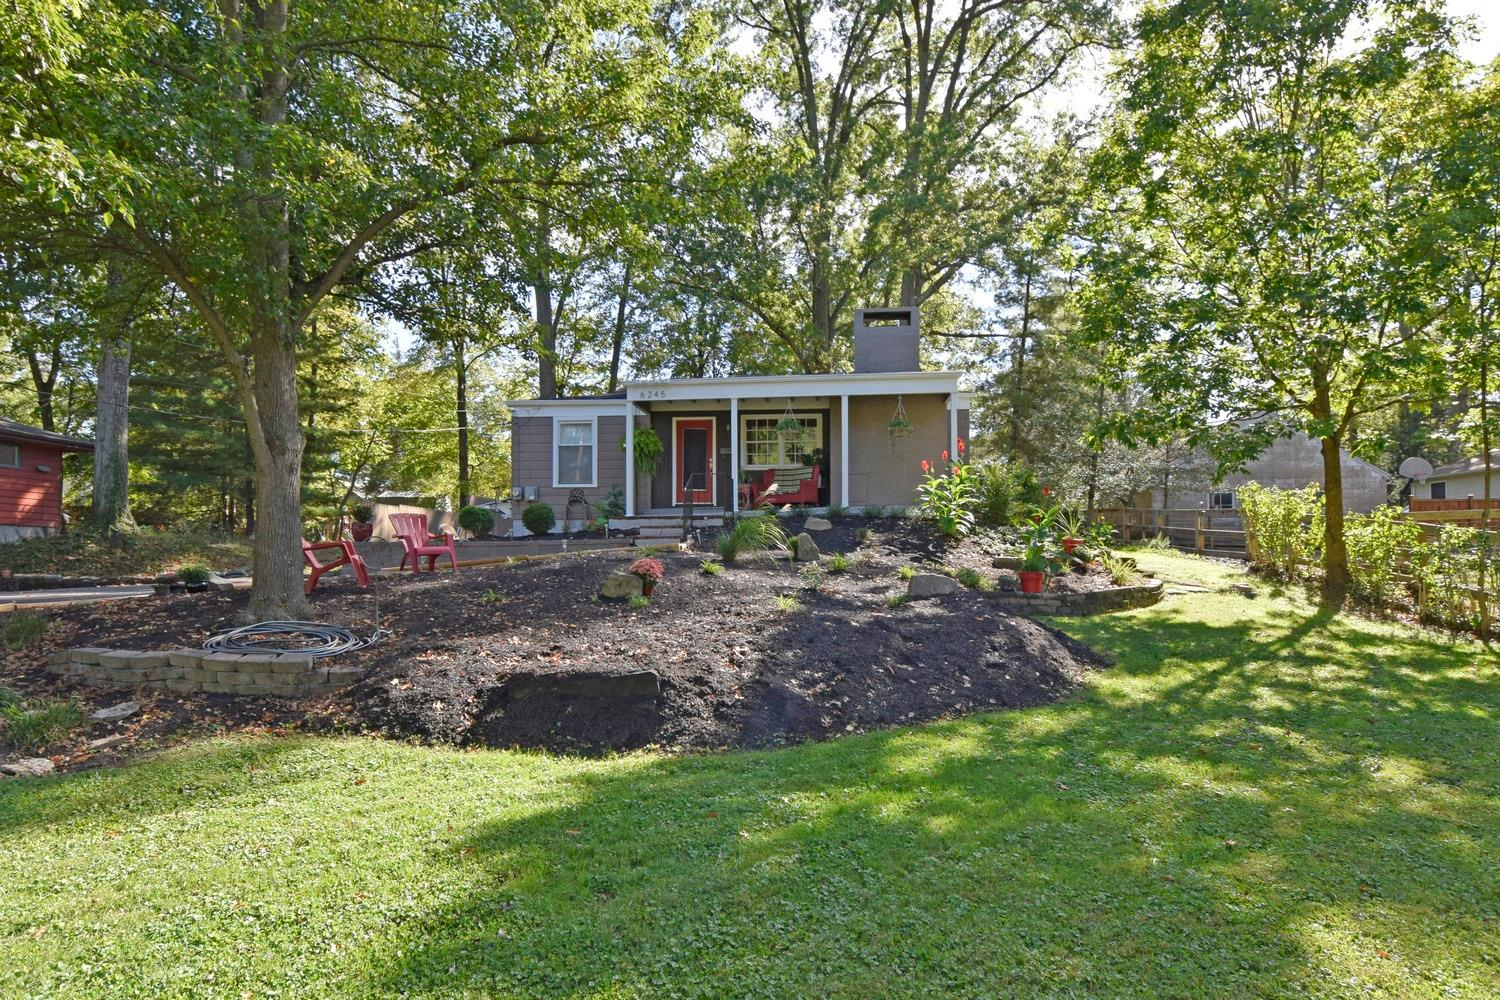 A must see to appreciate this Mid Century Modern Bungalow Ranch. 3 bedrooms, study, 2.5 baths, open floor plan. Completely updated kitchen. Private backyard/entertainment area with mature trees. Large LL ideal for exercise room, work/study space.  Many updates while maintaining vintage features.